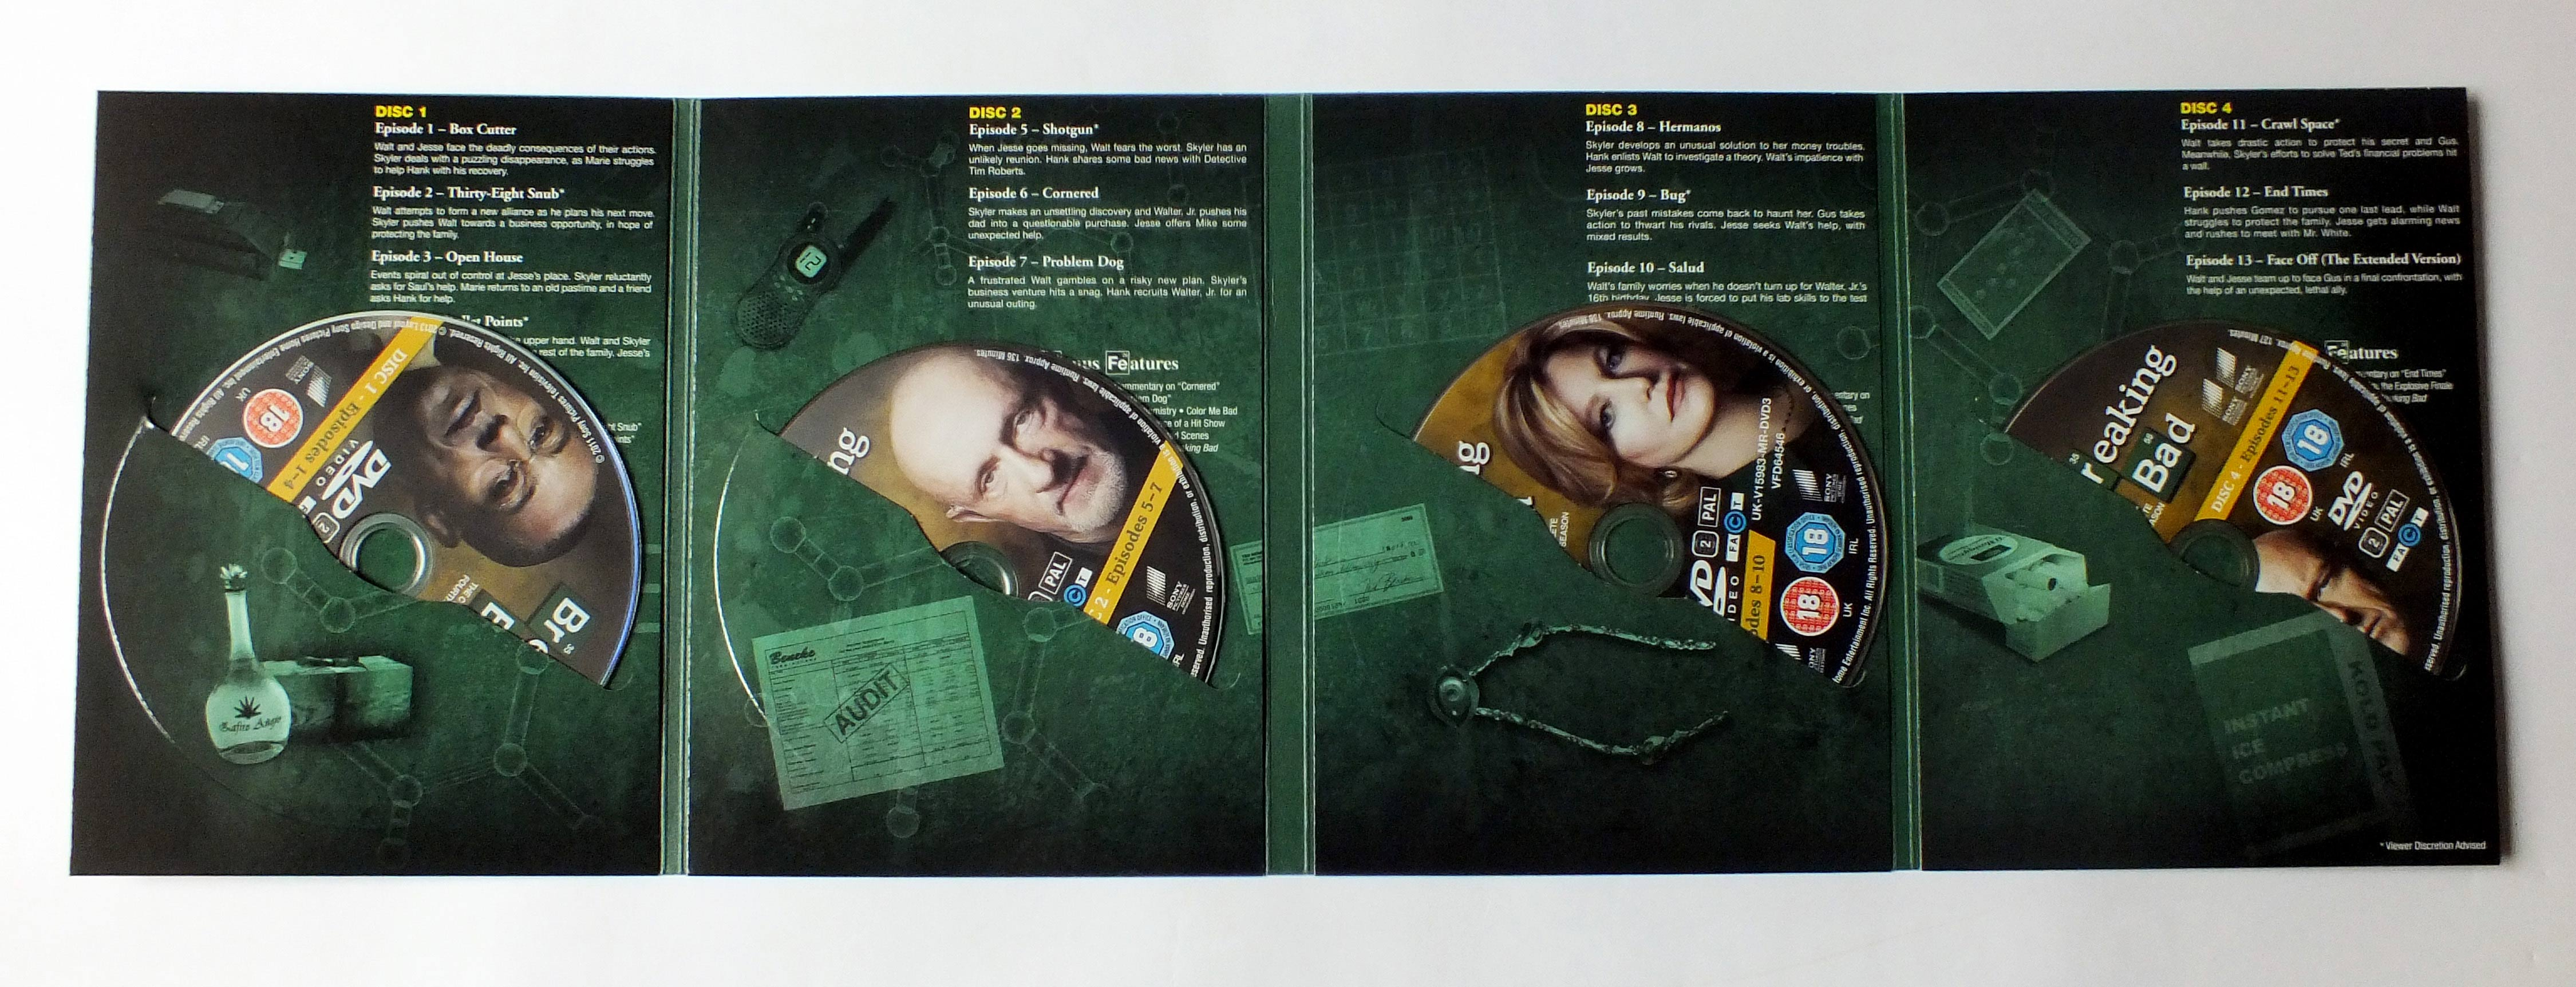 Bad Serie Breaking Bad Complete Series Dvd Box Set B00e3r33h8 Uk Pal